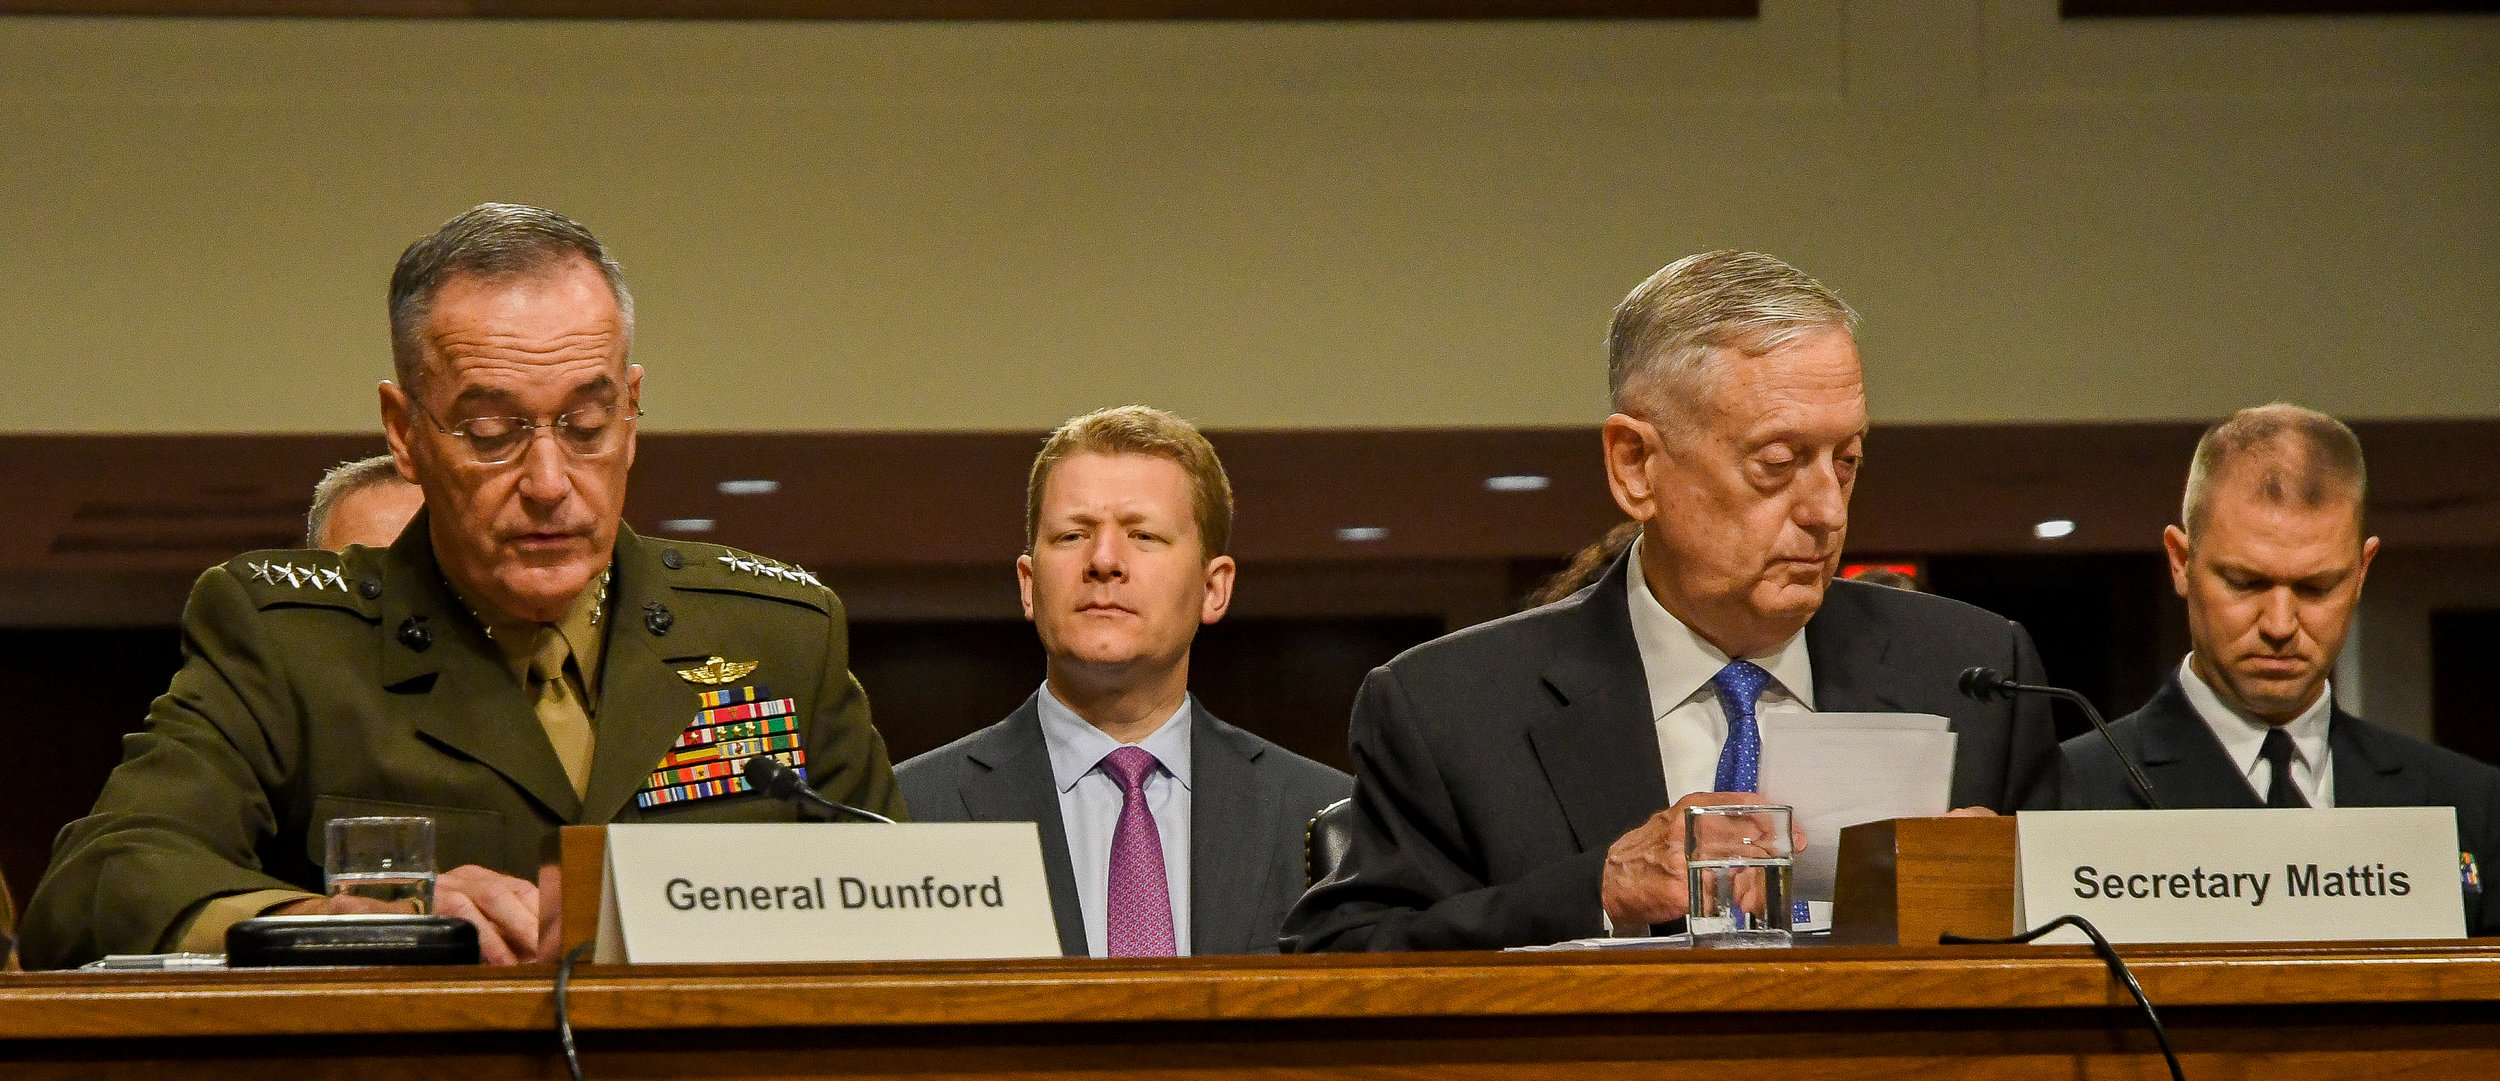 Washington DC. USA, June 13, 2017. PICTURED:  Secretary of Defense James Mattis and Army Chief of Staff General Dunford, take questions in appropriations committee. Mattis and Dunford both agree that climate change is a significant national security threat.